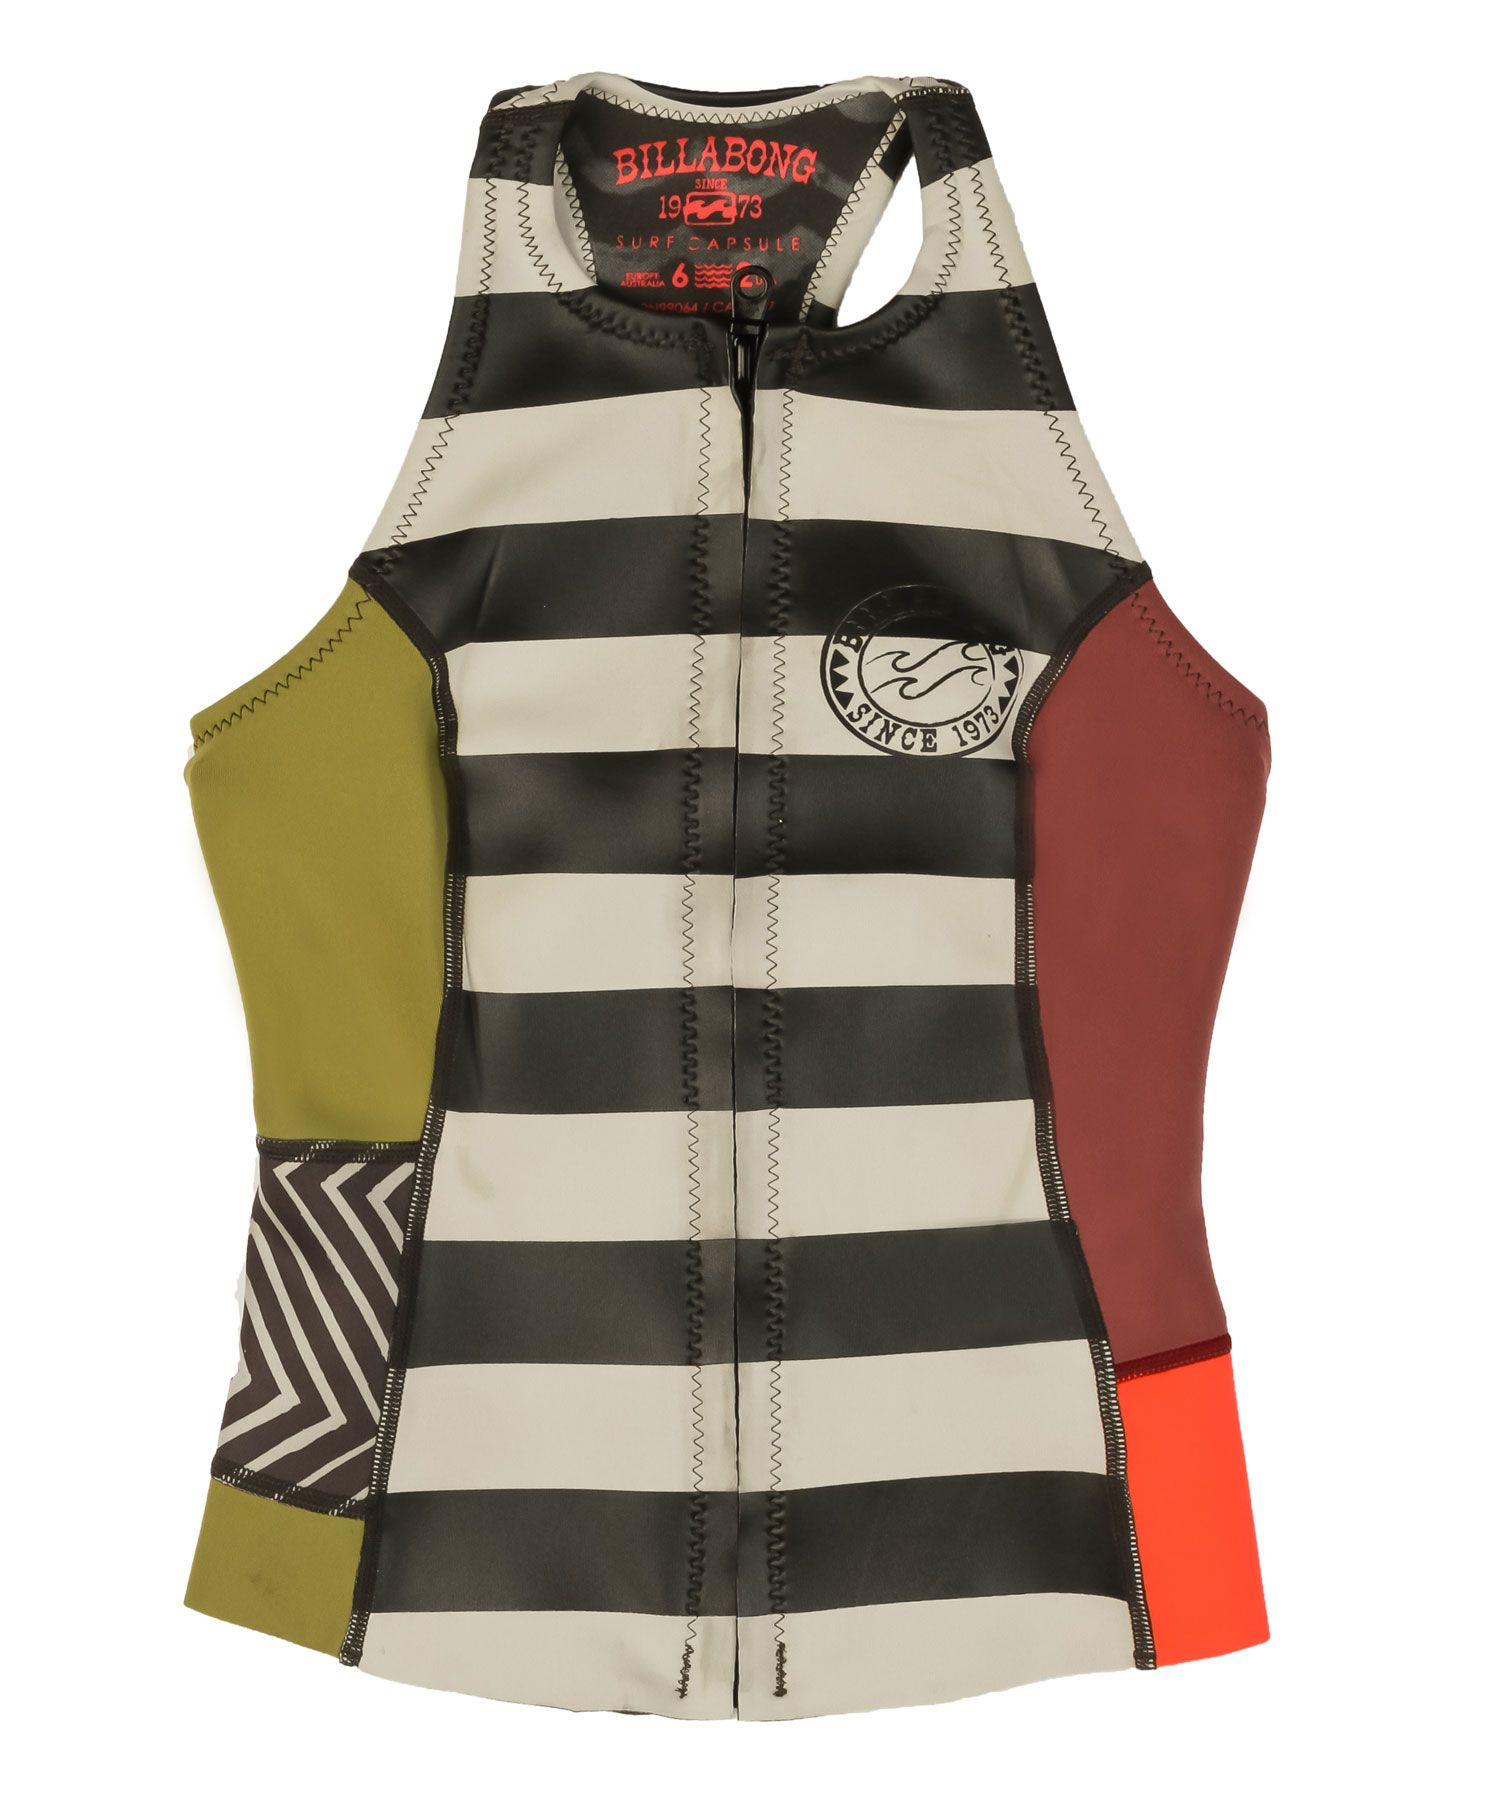 Sneeky Vest Billabong US Clothes, Surf outfit, Womens